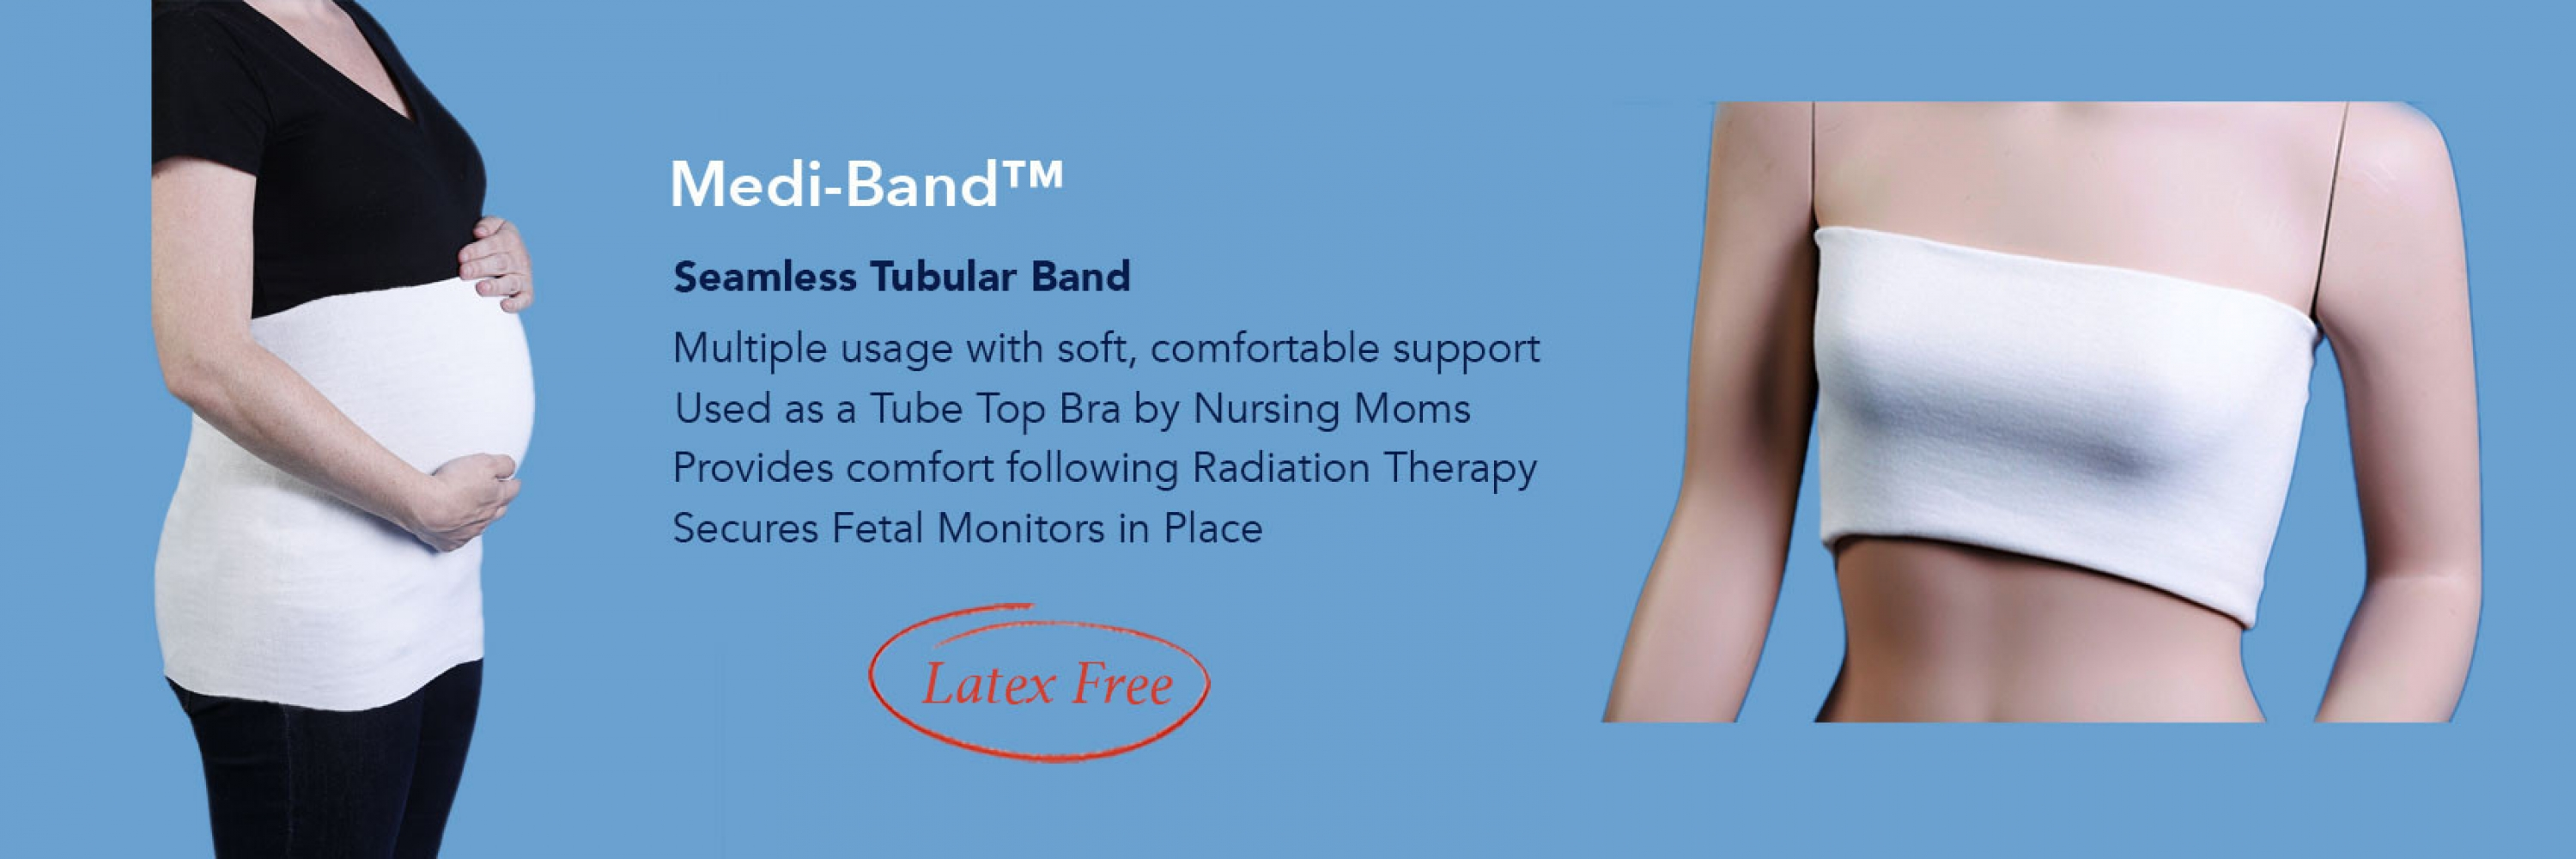 Slide-MediBand-Seamless-Tubular-Band4